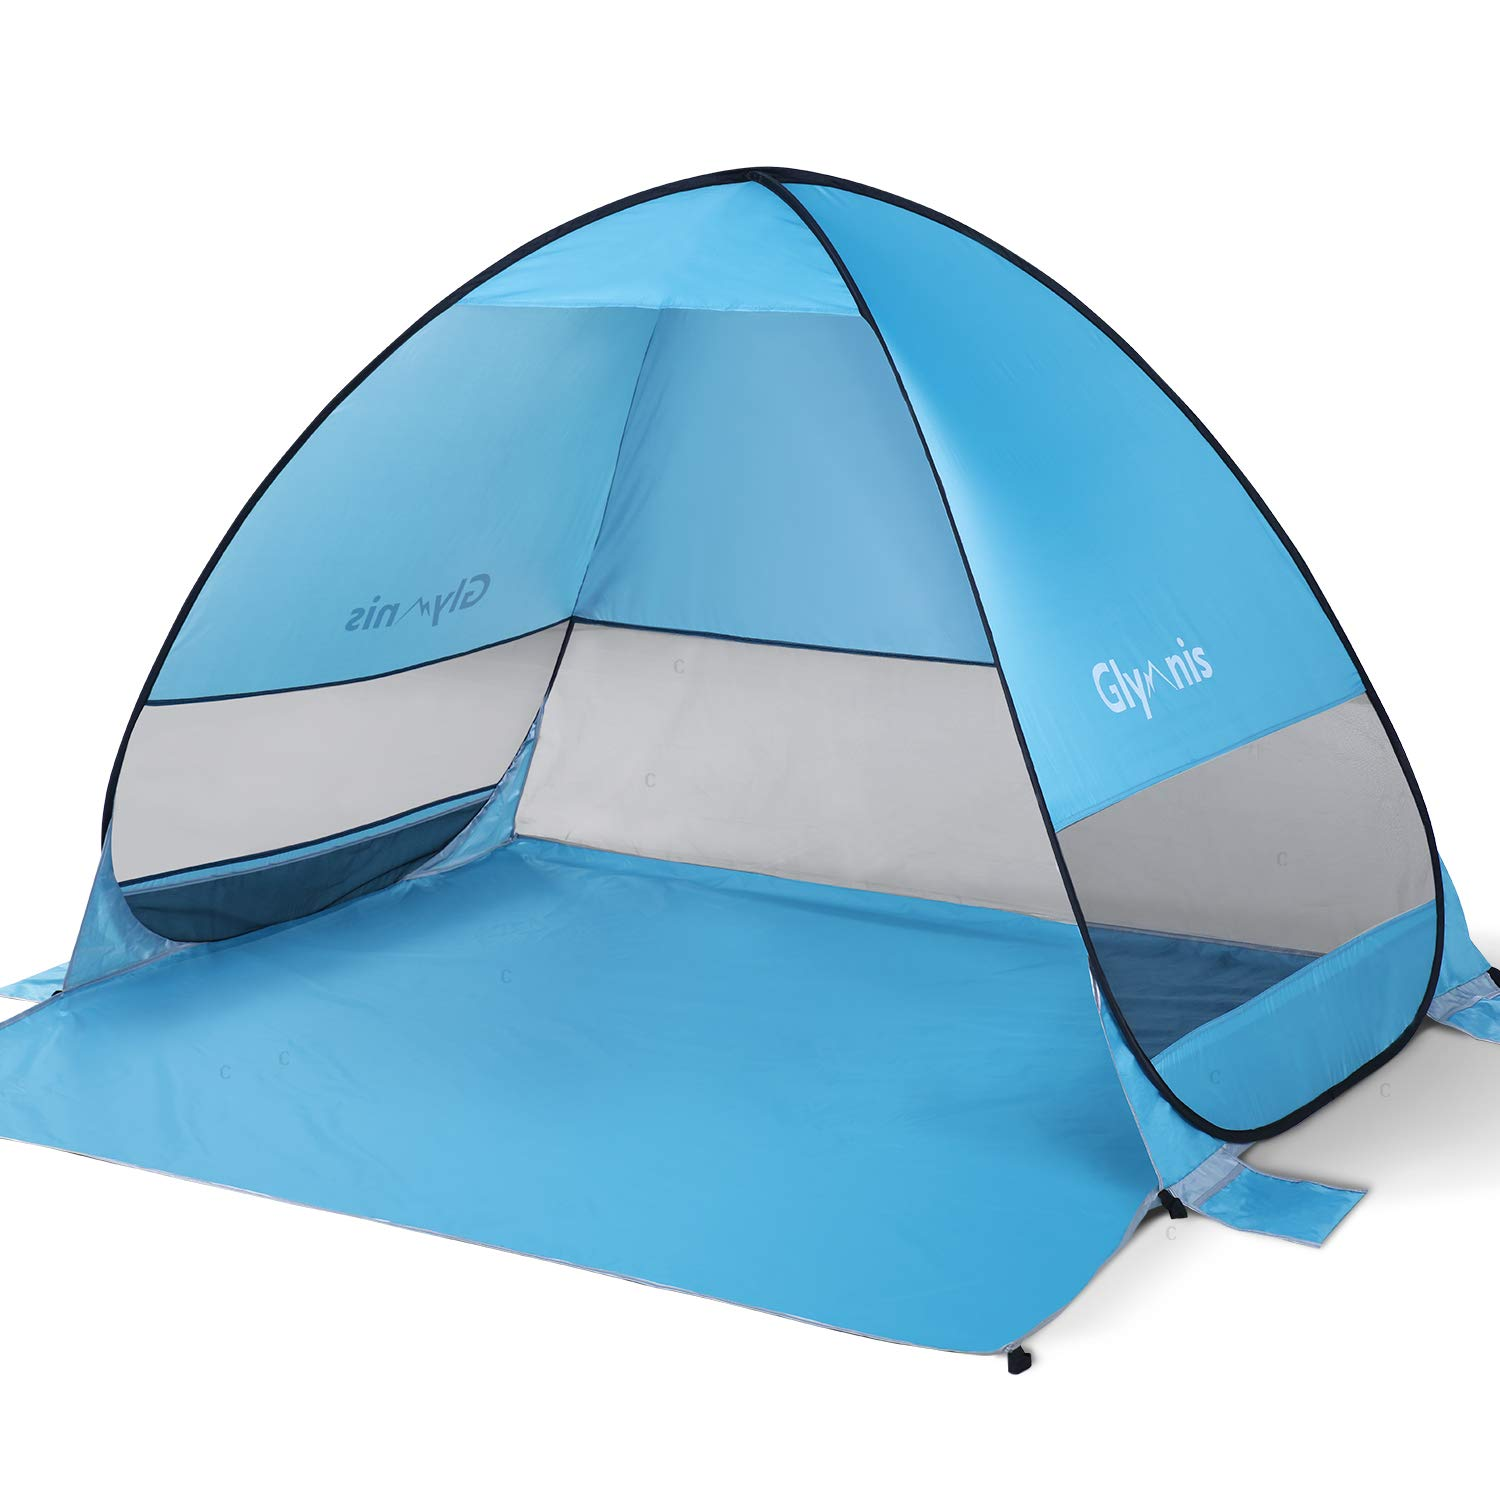 Glymnis Beach Tent Beach Sun Shelter Pop Up Beach Shade Tent with Portable Sun Shade UPF 50+ for Outdoor Activities Beach Traveling Blue by Glymnis